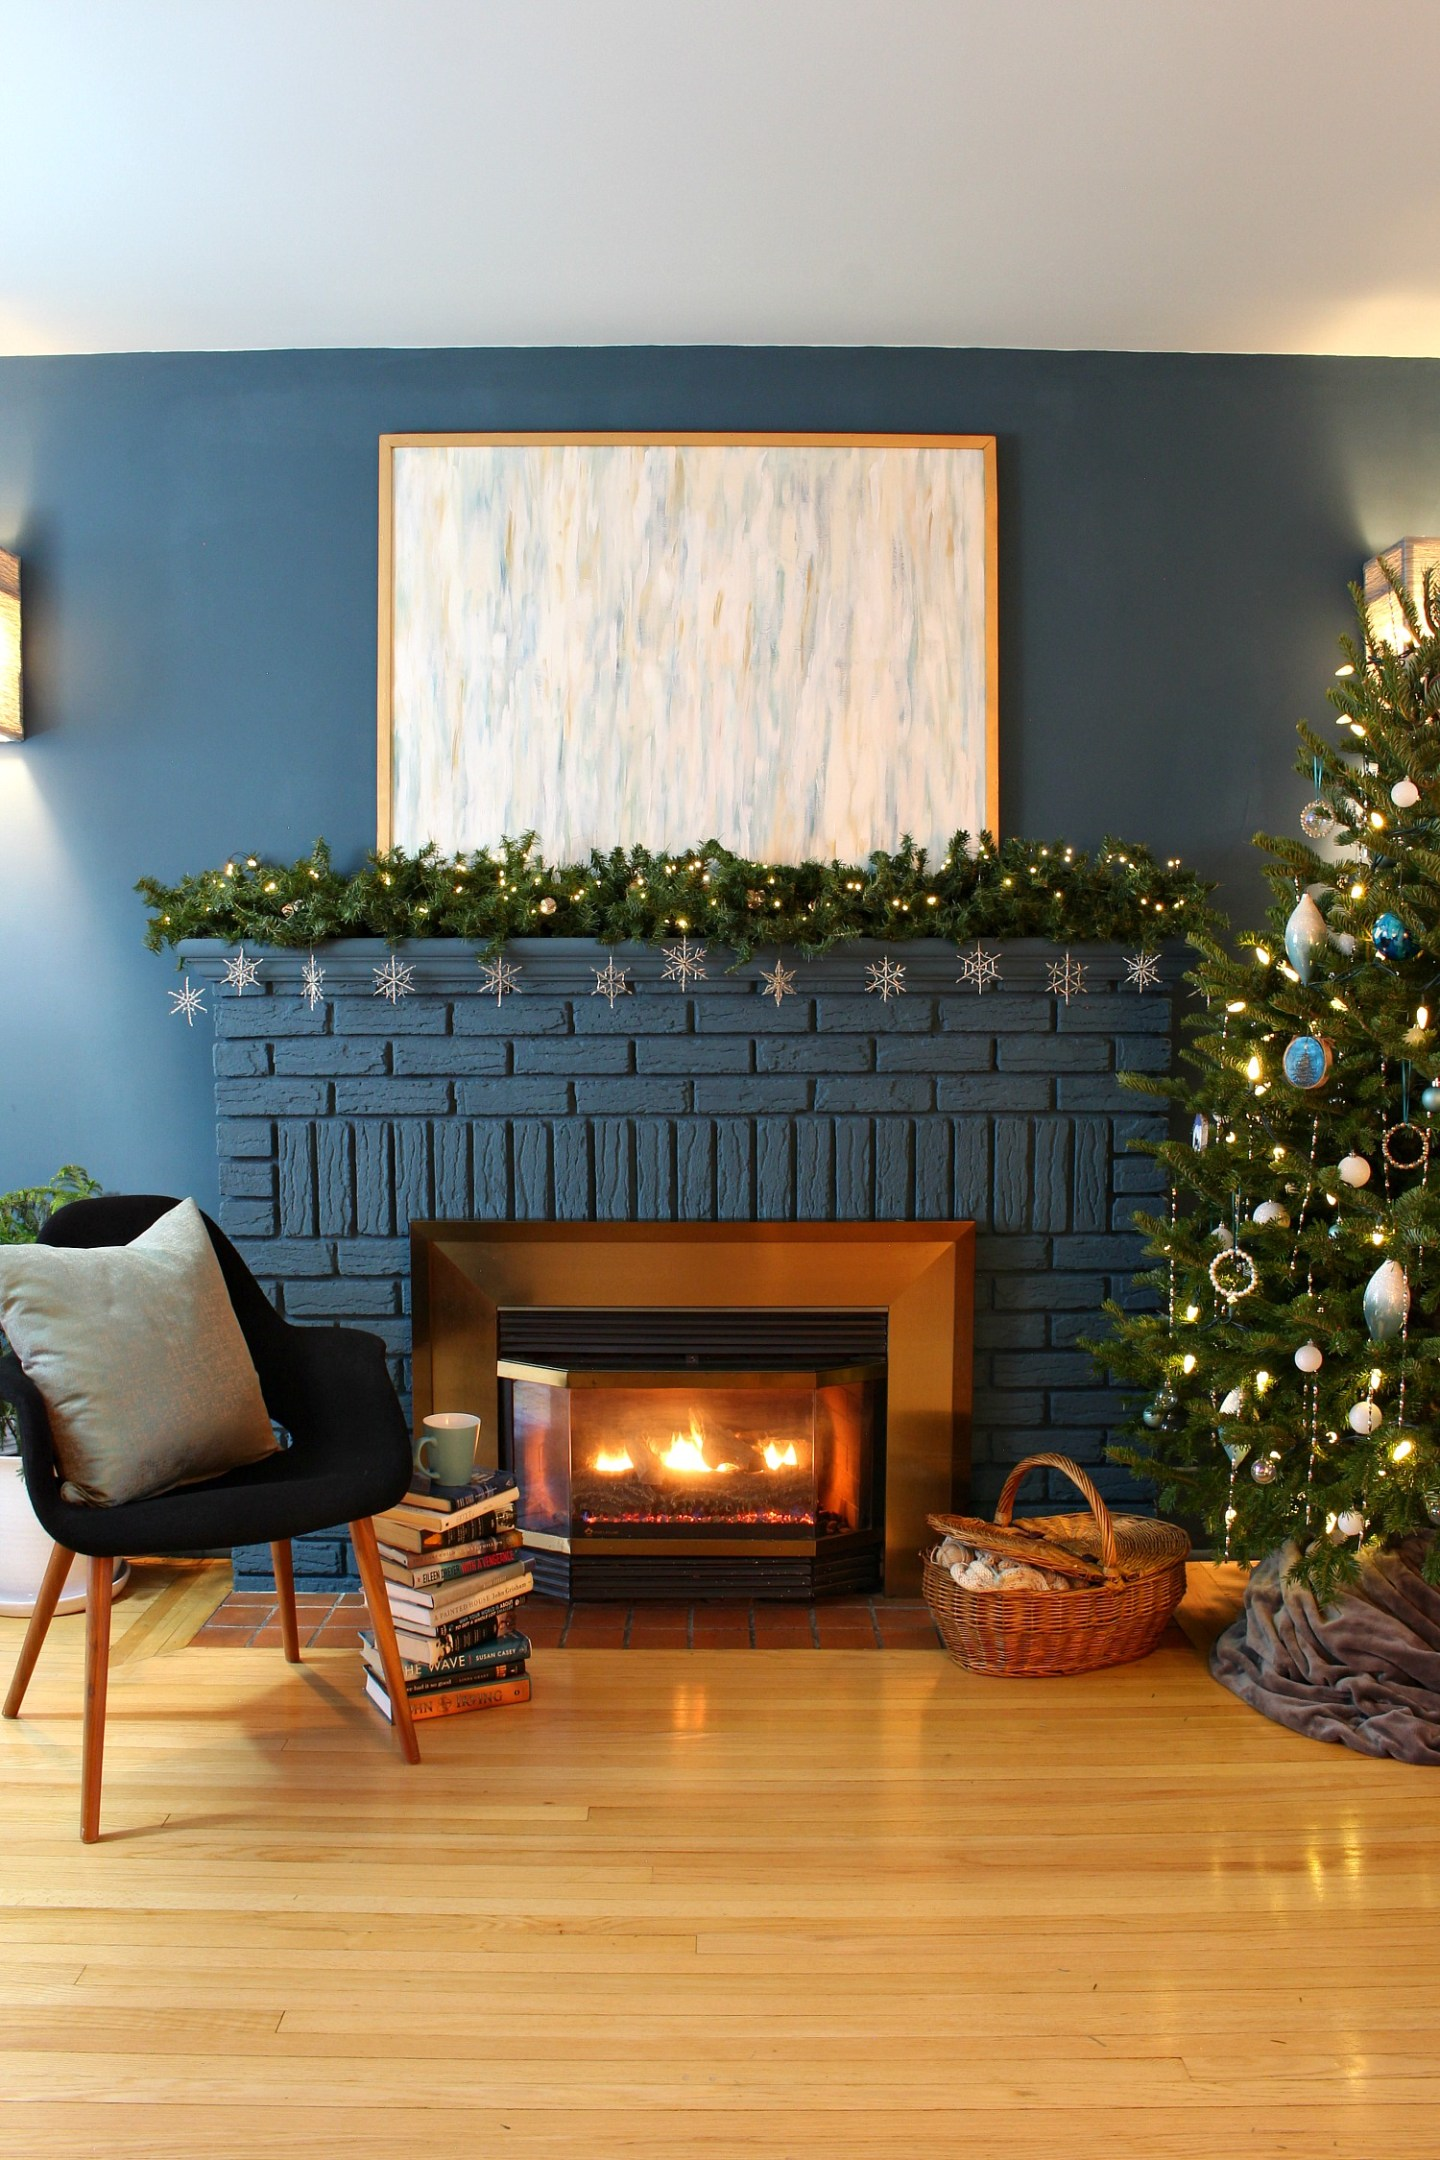 Blue Fireplace with Christmas Garland